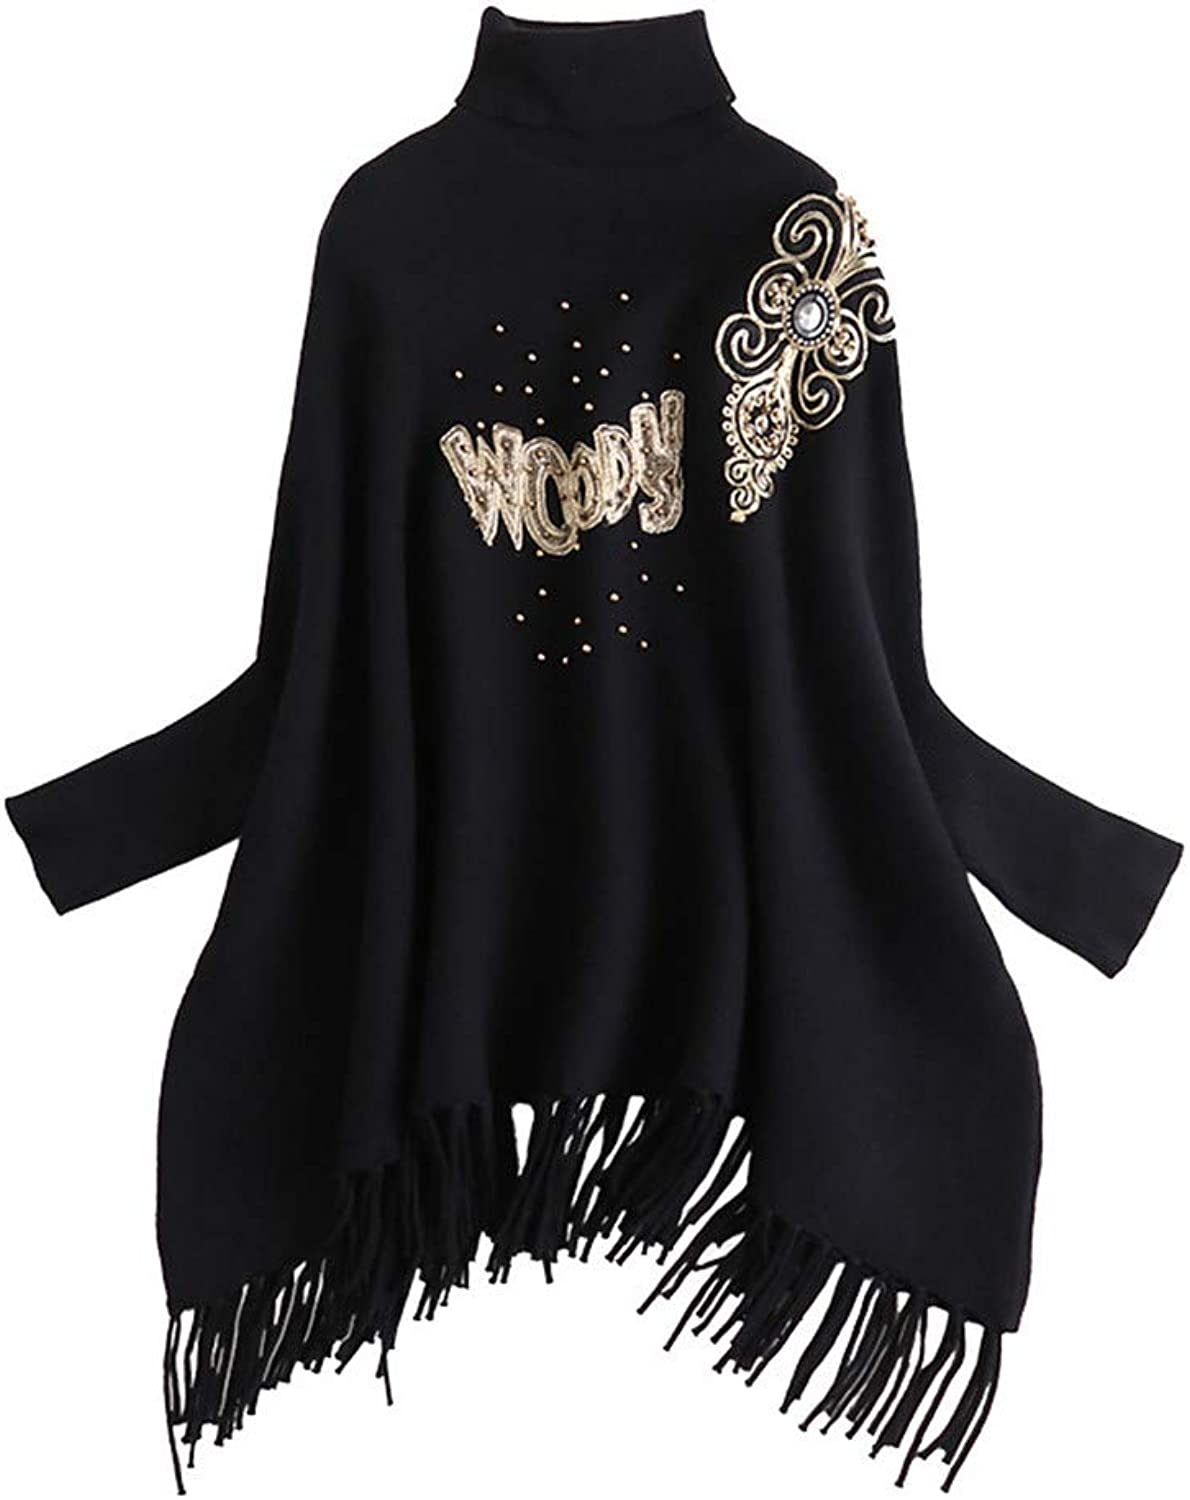 Womens Cape Poncho Coat Ladies Batwing Sleeve High Collar Sweater Tassel Knitting Shawl Wrap Poncho Long Sleeve Top Blouse Cardigan Cloak Jacket for Winter Cocktail (color   Black, Size   L)